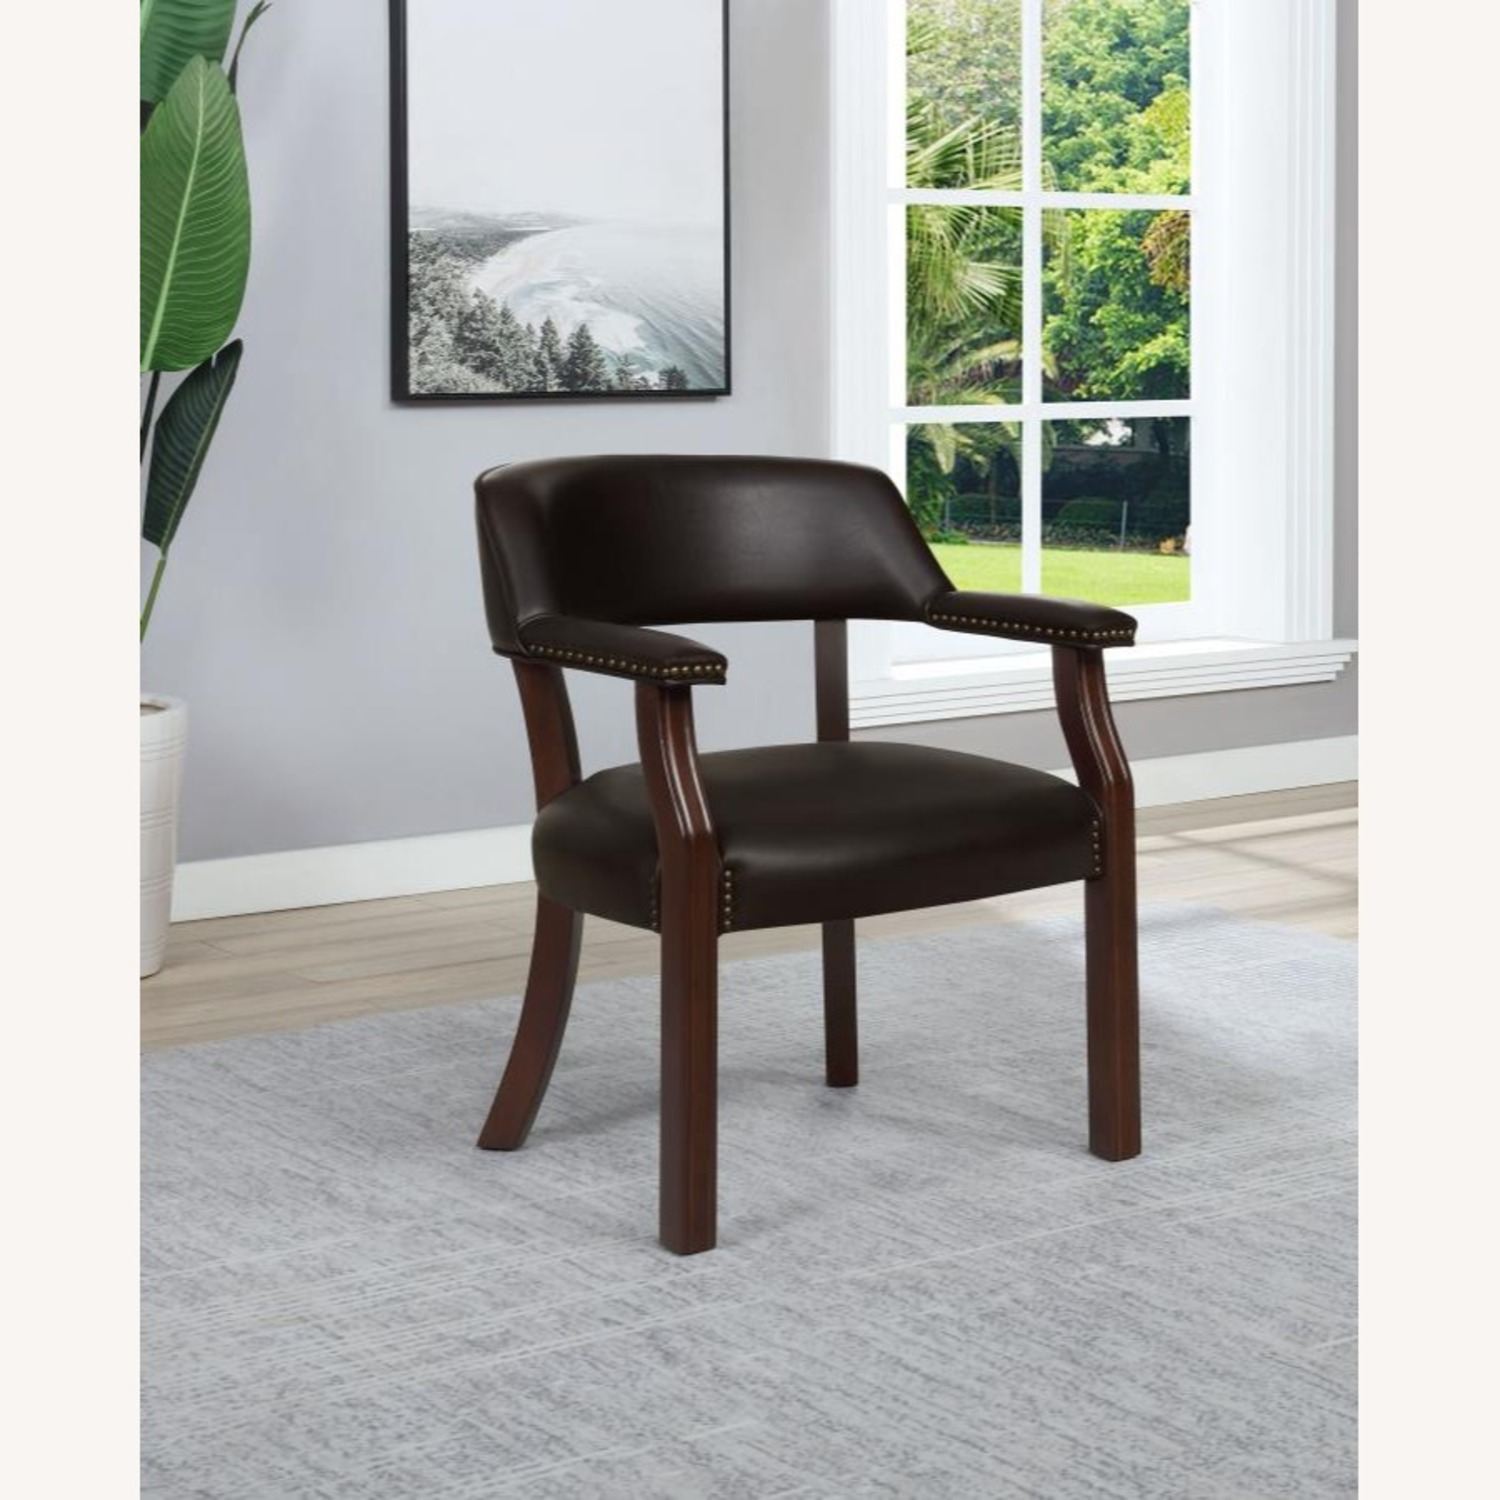 Guest Chair In Brown Leatherette - image-2